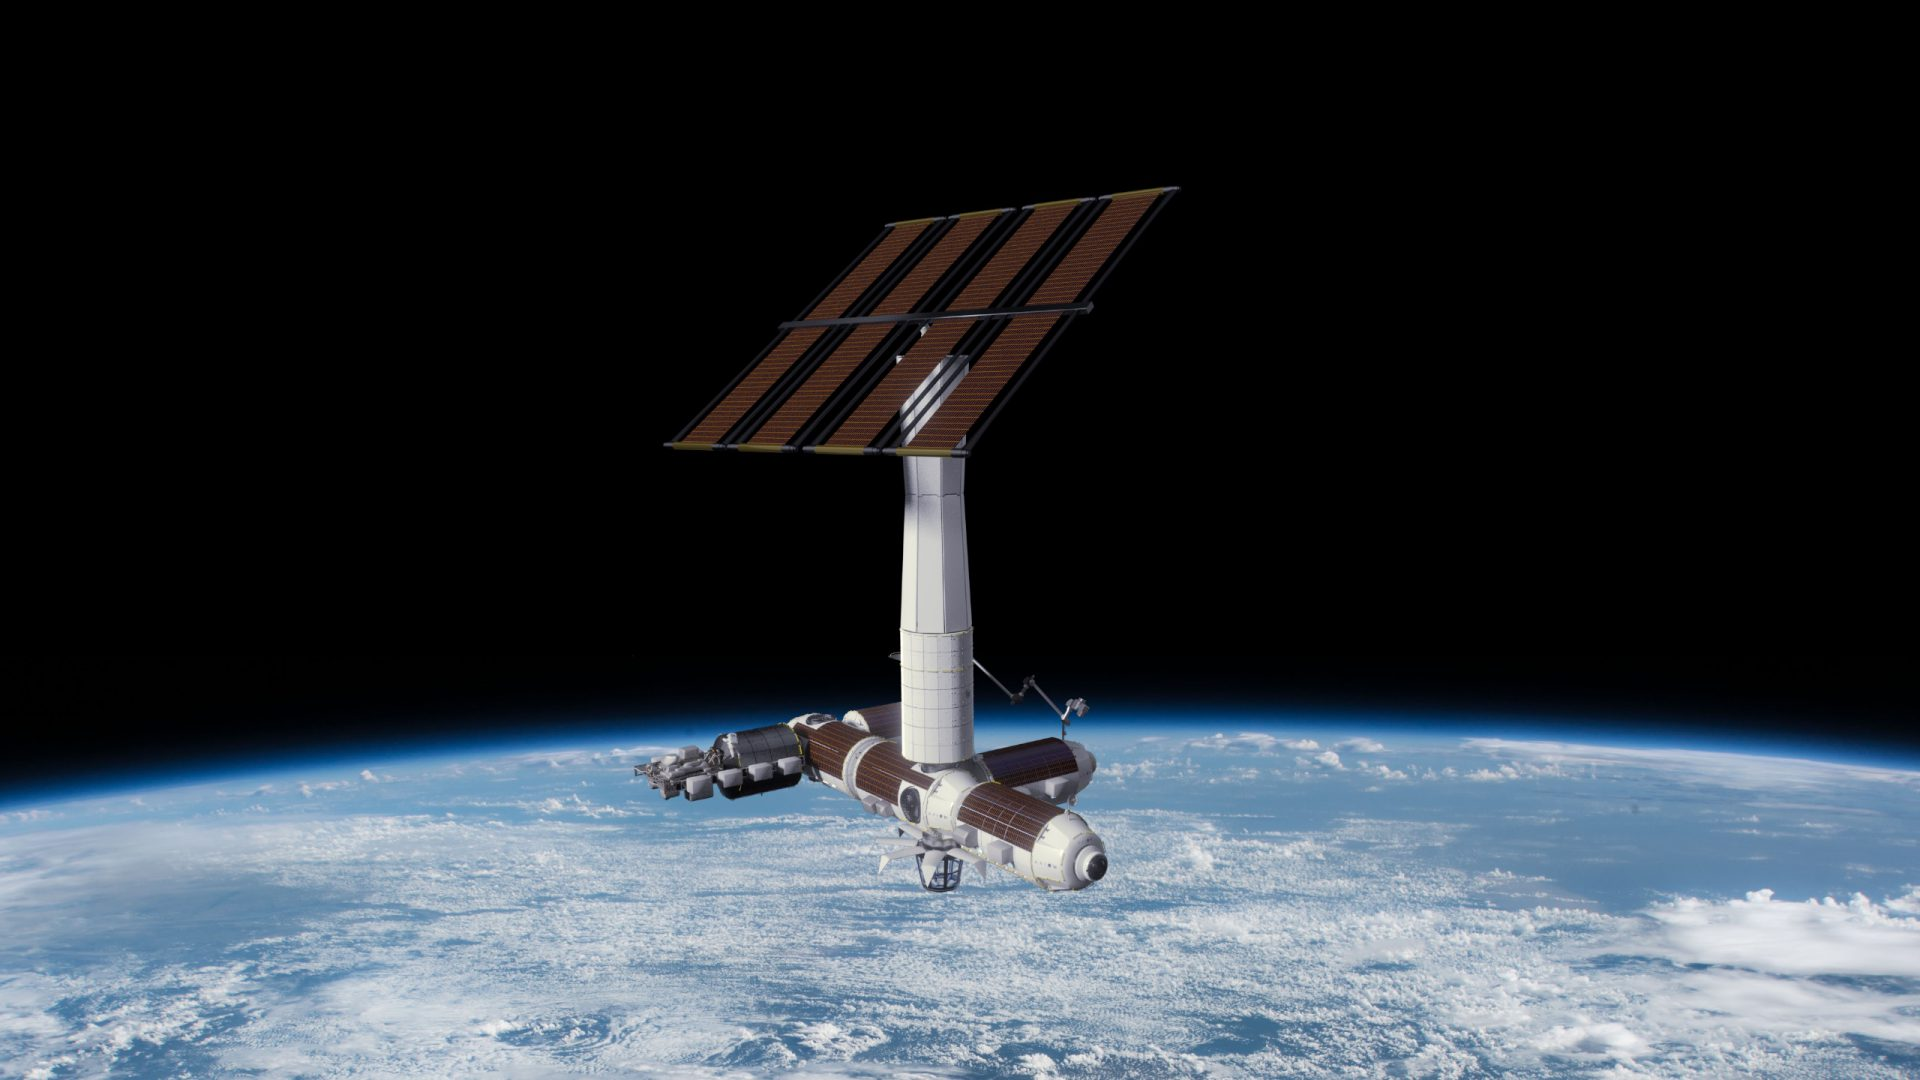 """Axiom """"orders"""" two space station modules from Thales Alenia Space initially for attachment to ISS but later to become part of own space station"""